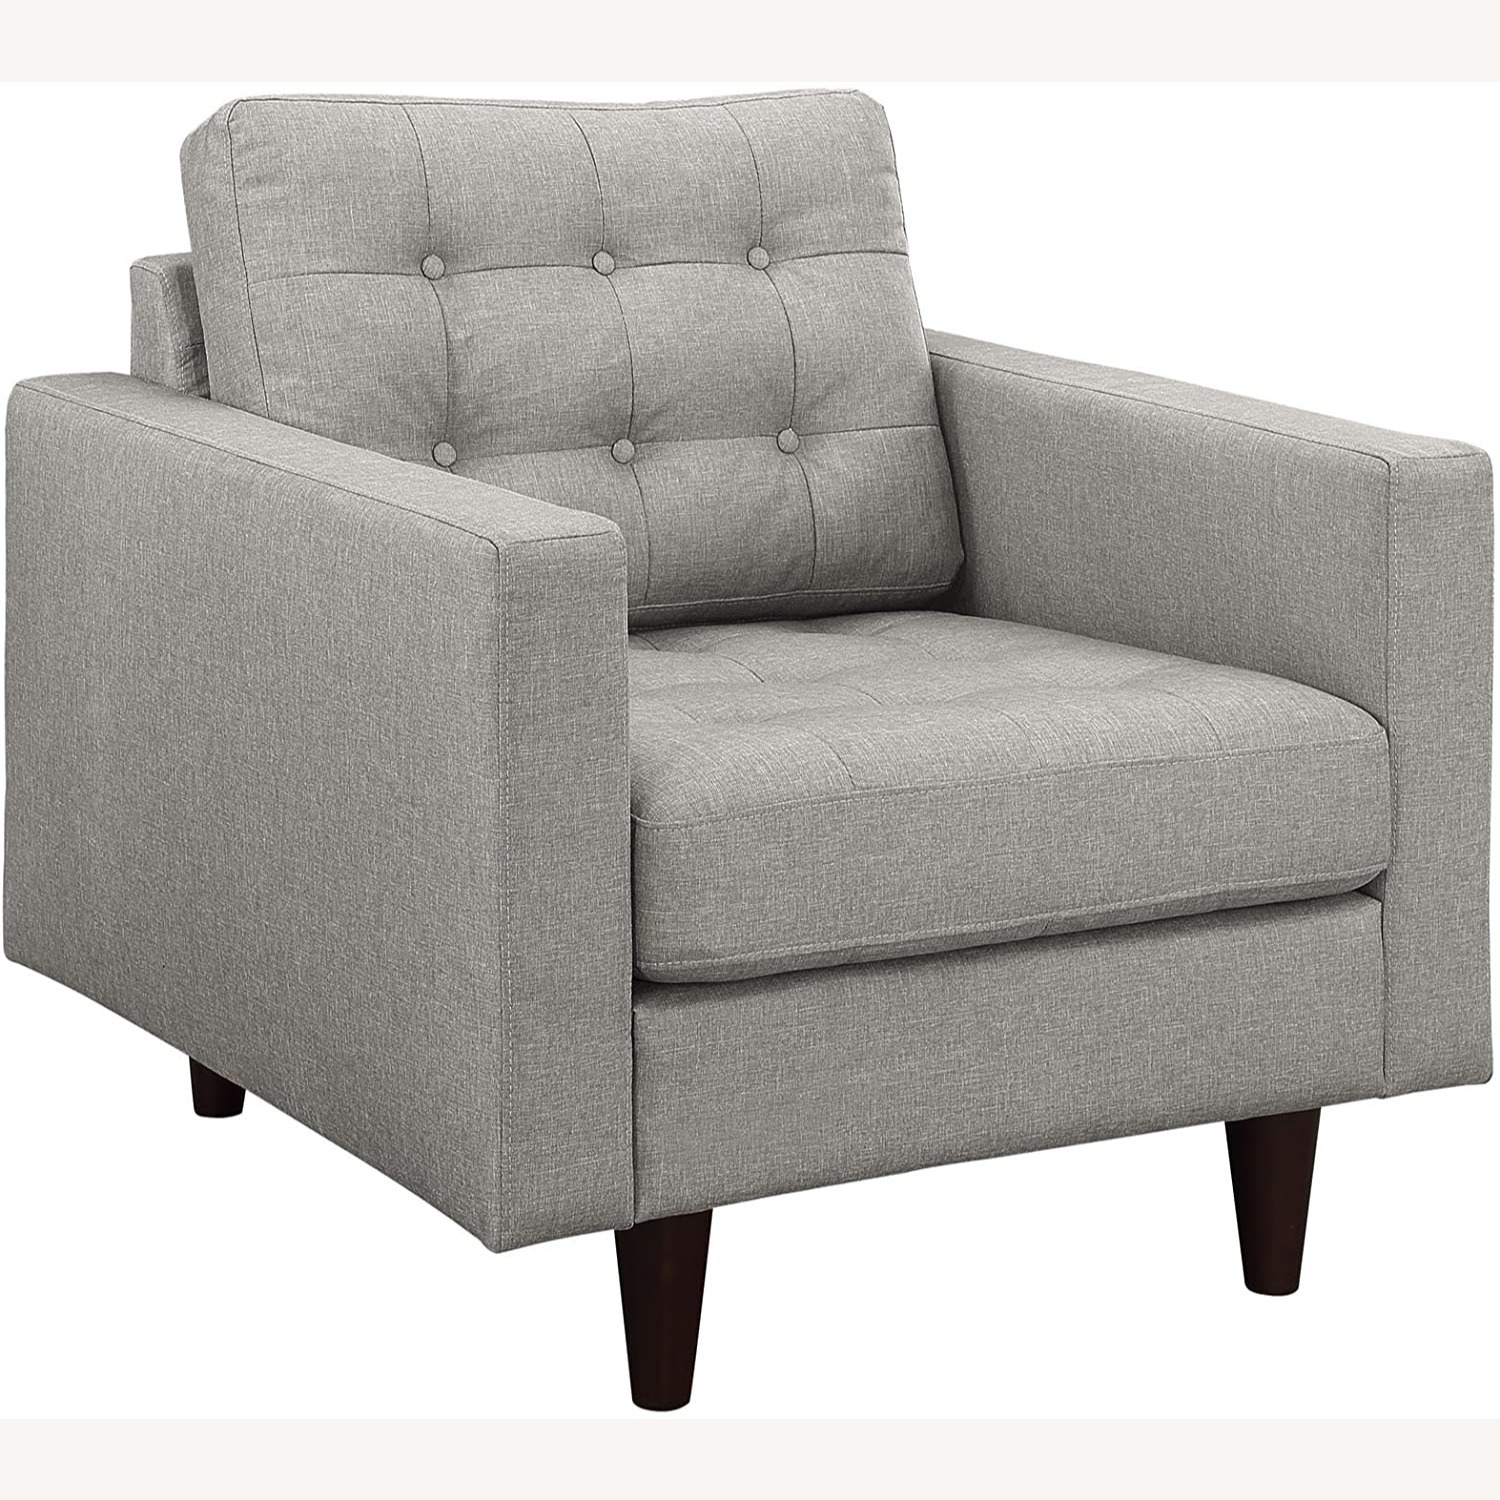 Armchair In Gray Upholstery W/ Tufted Buttons - image-0